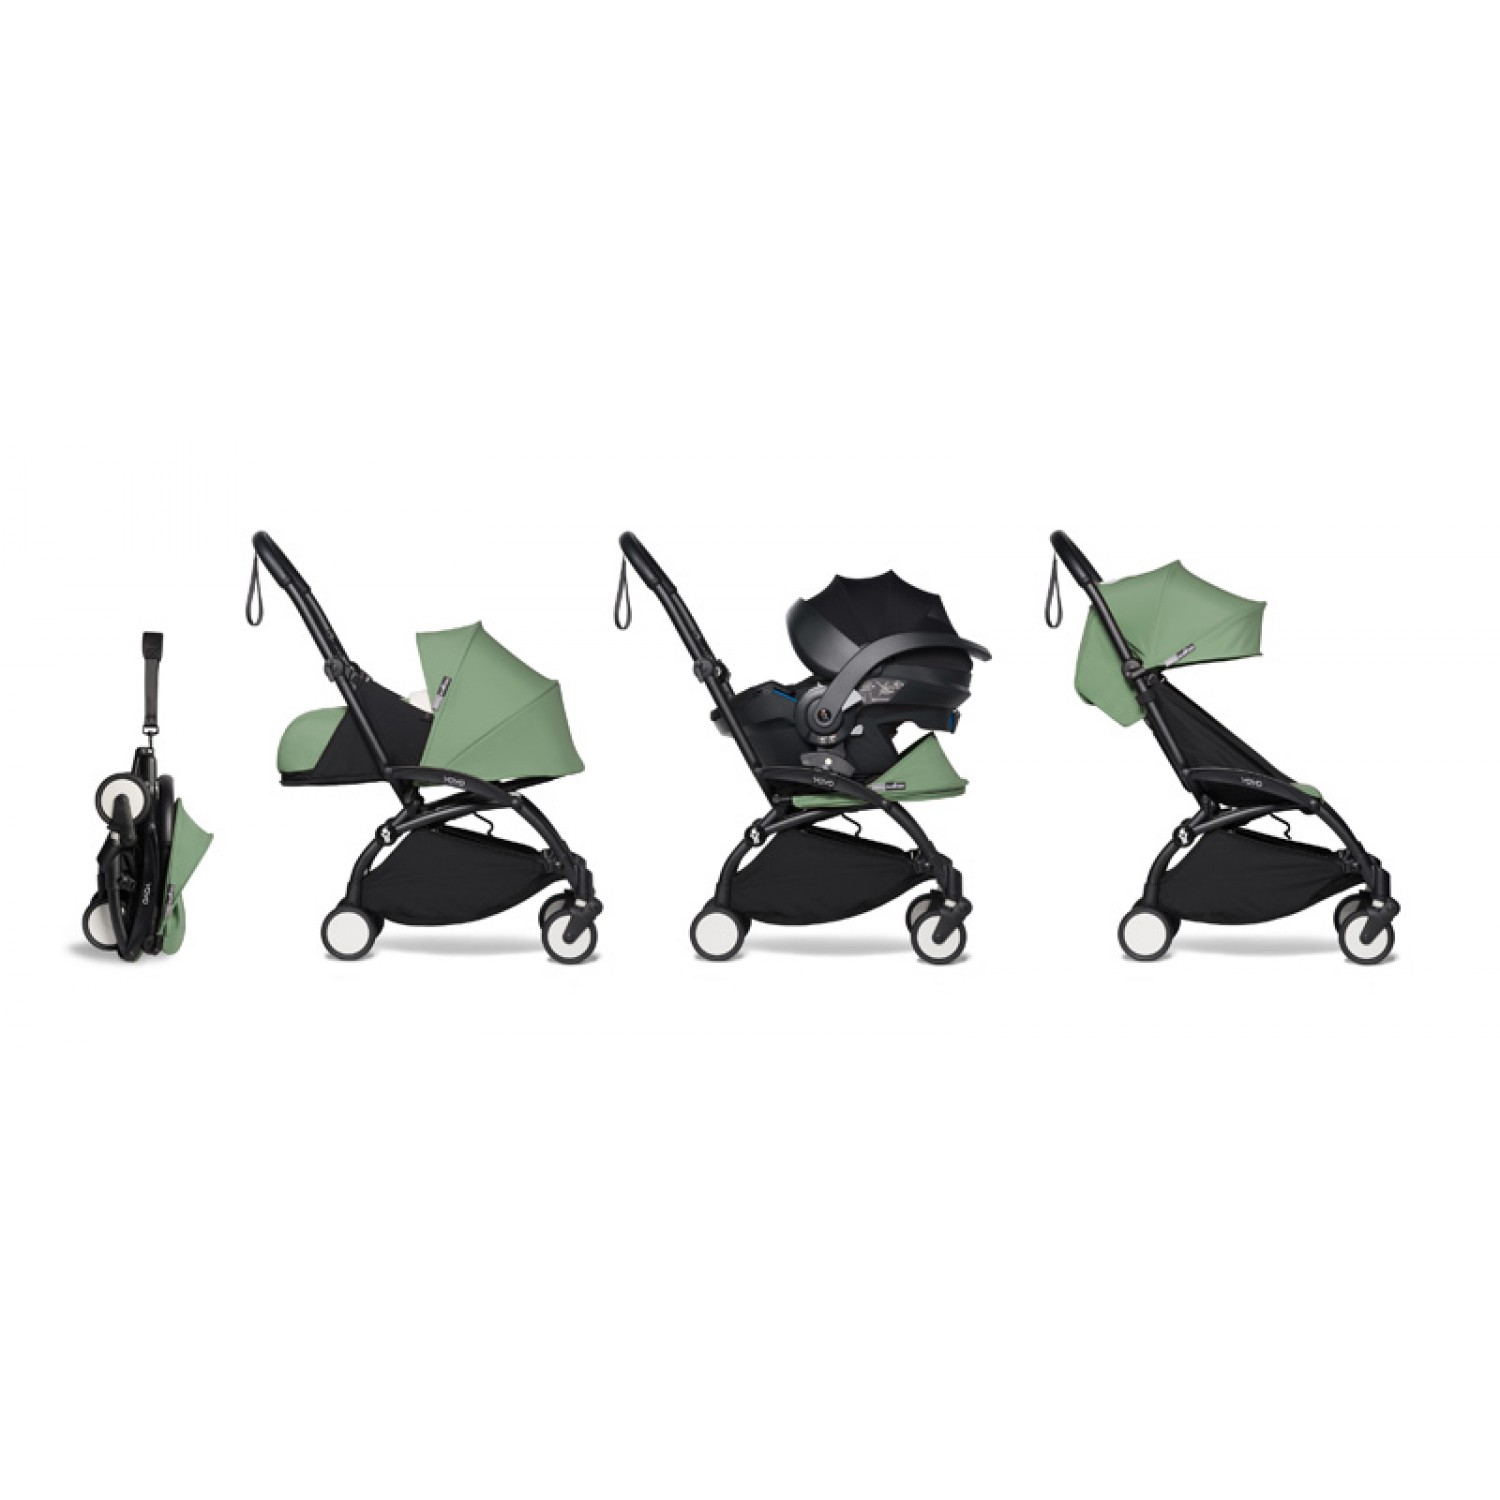 All-in-one BABYZEN stroller YOYO2 0+, car seat and 6+  | Black Chassis Peppermint